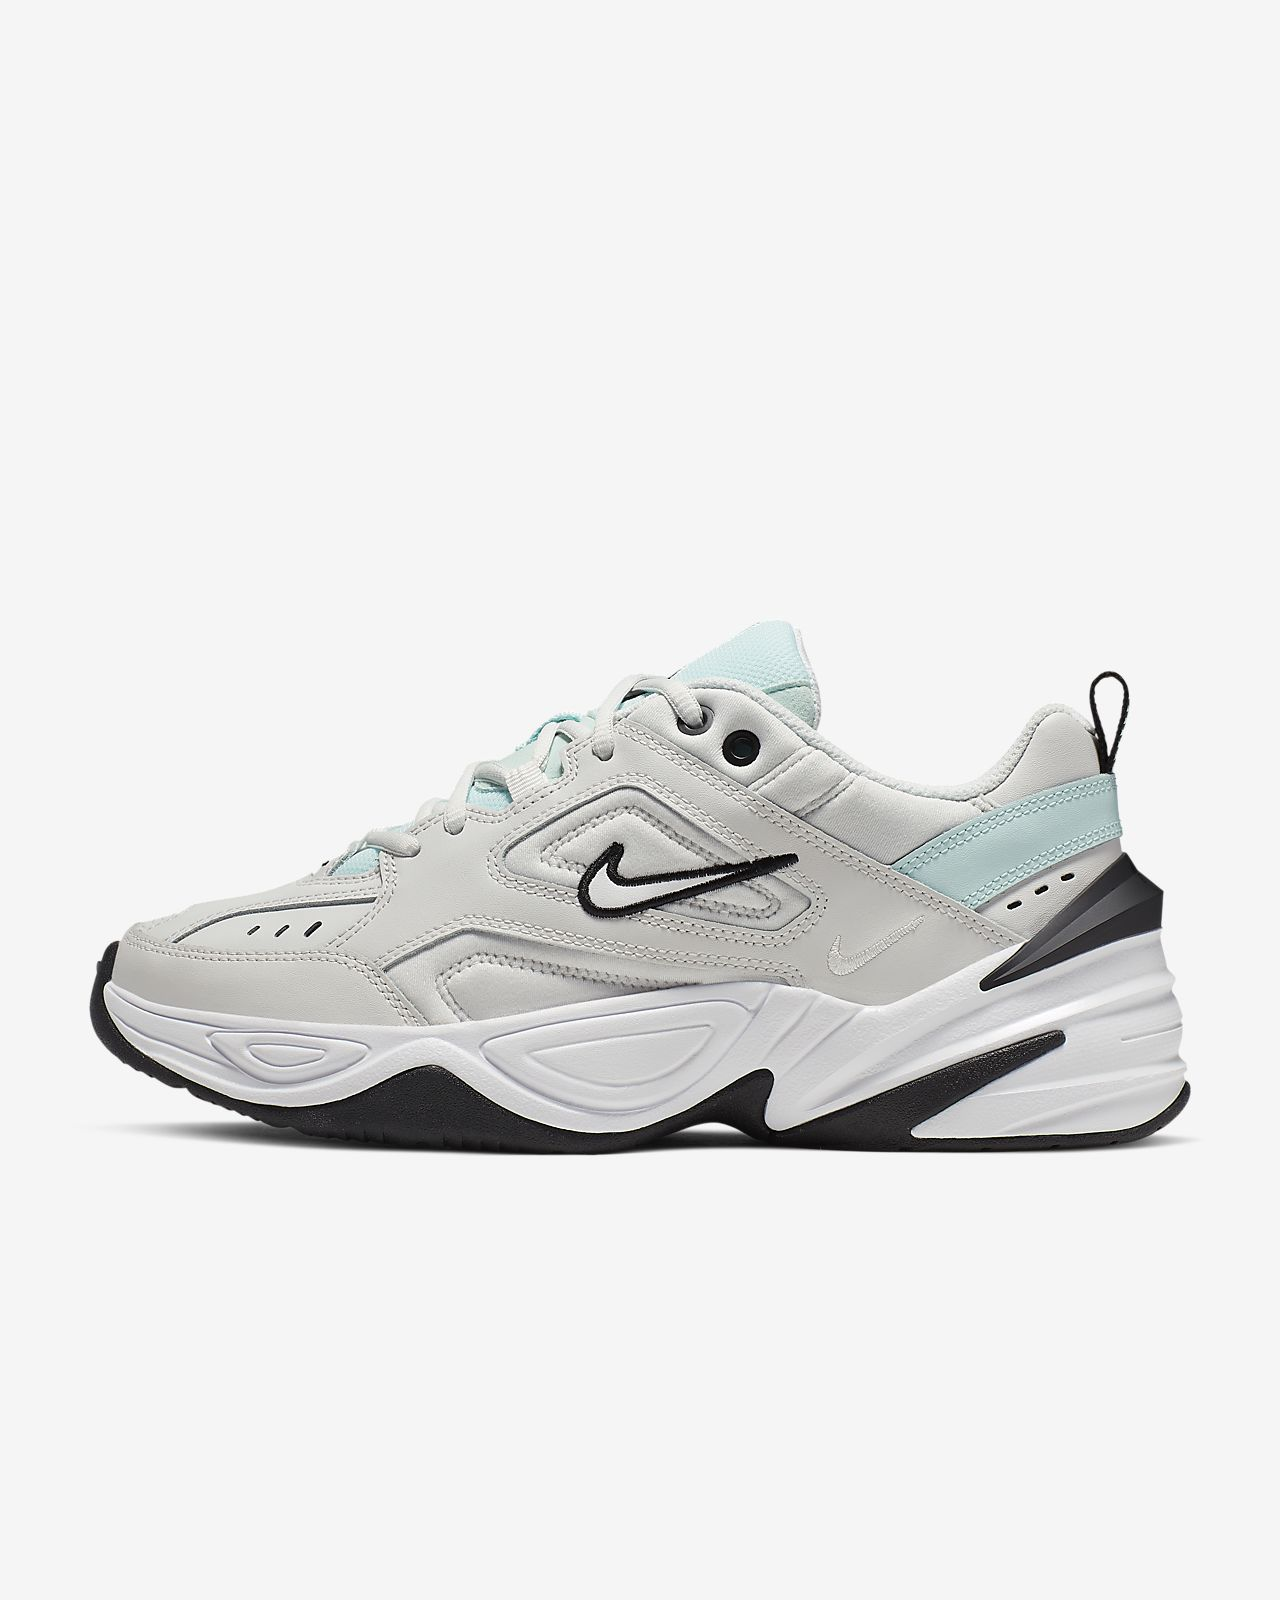 lower price with 59ccc 0d035 Low Resolution Nike M2K Tekno Shoe Nike M2K Tekno Shoe